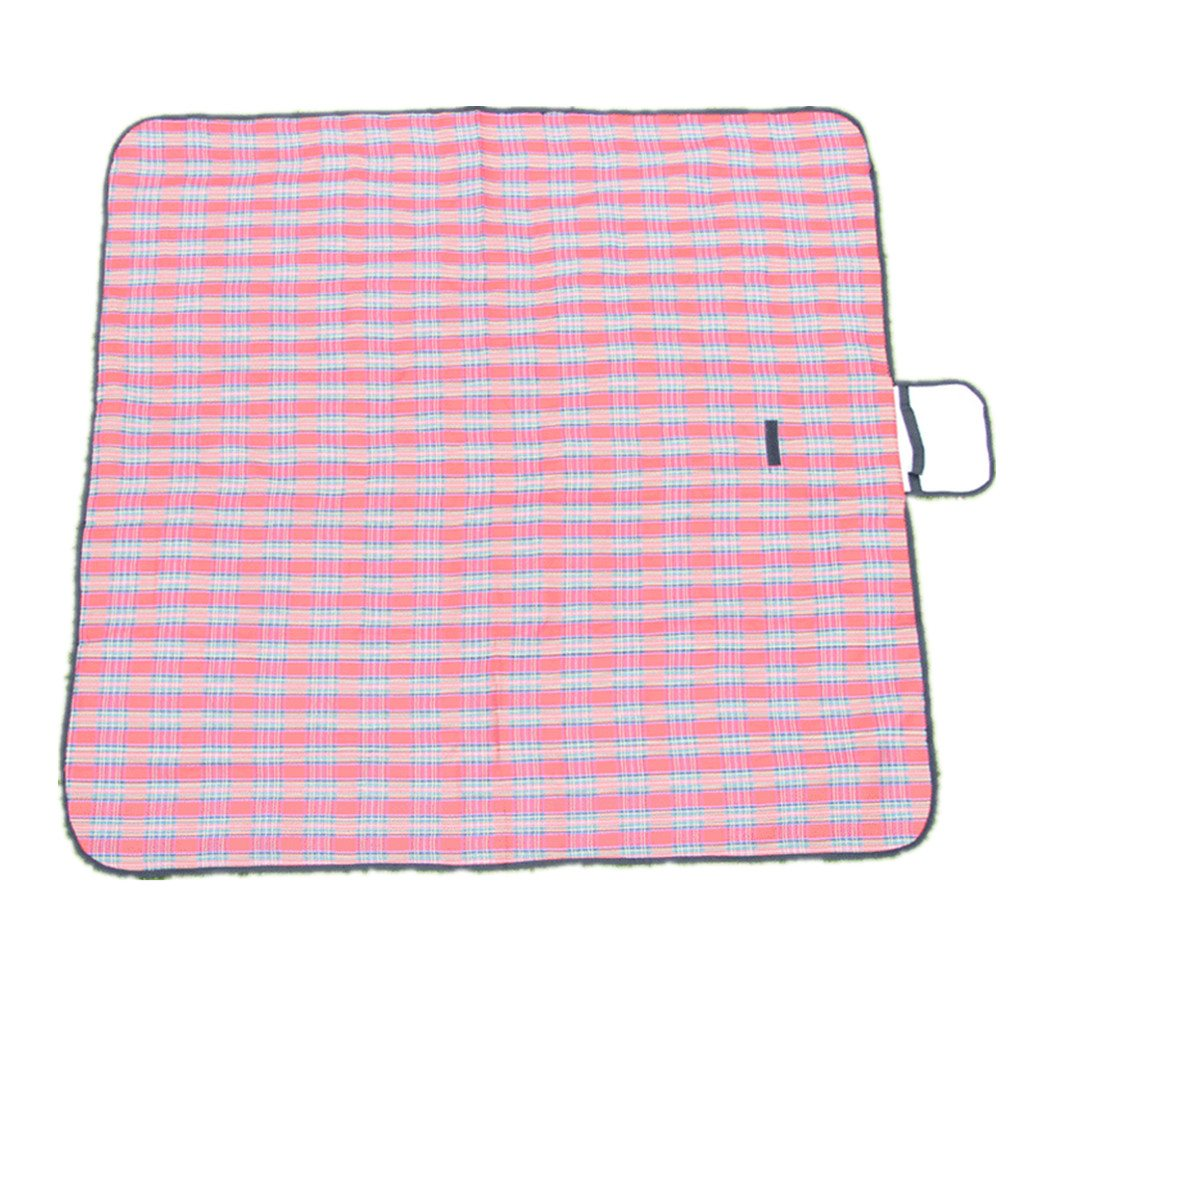 Waterproof Moistureproof Oxford Fabric Outdoor portable Beach Picnic Camping Mat Foldable Baby Climb Plaid Blanket 130x150cm